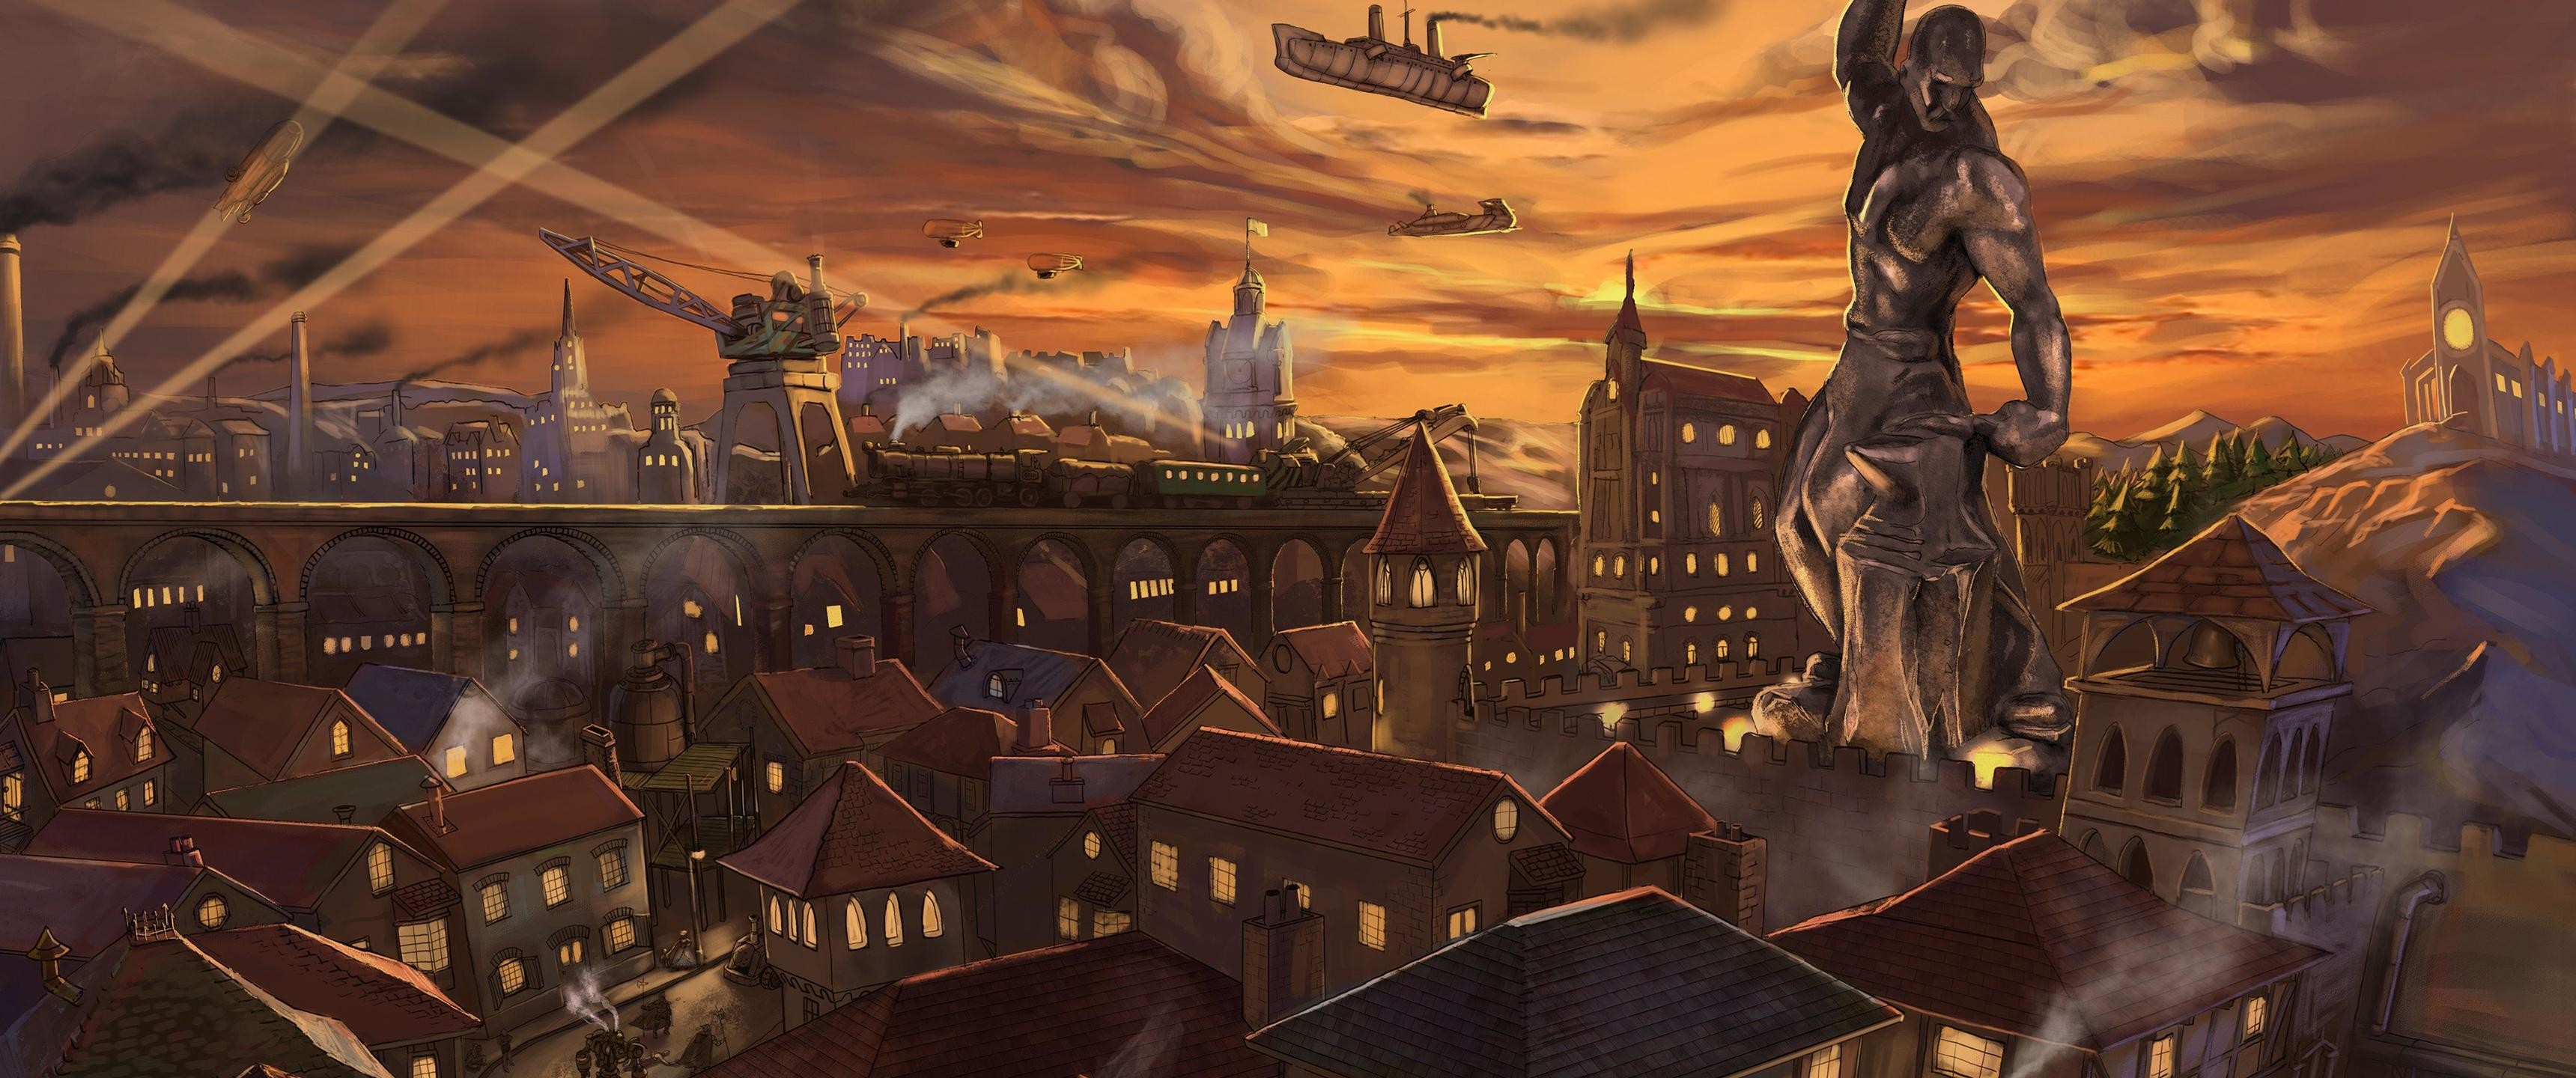 Steampunk Backgrounds 72 Images